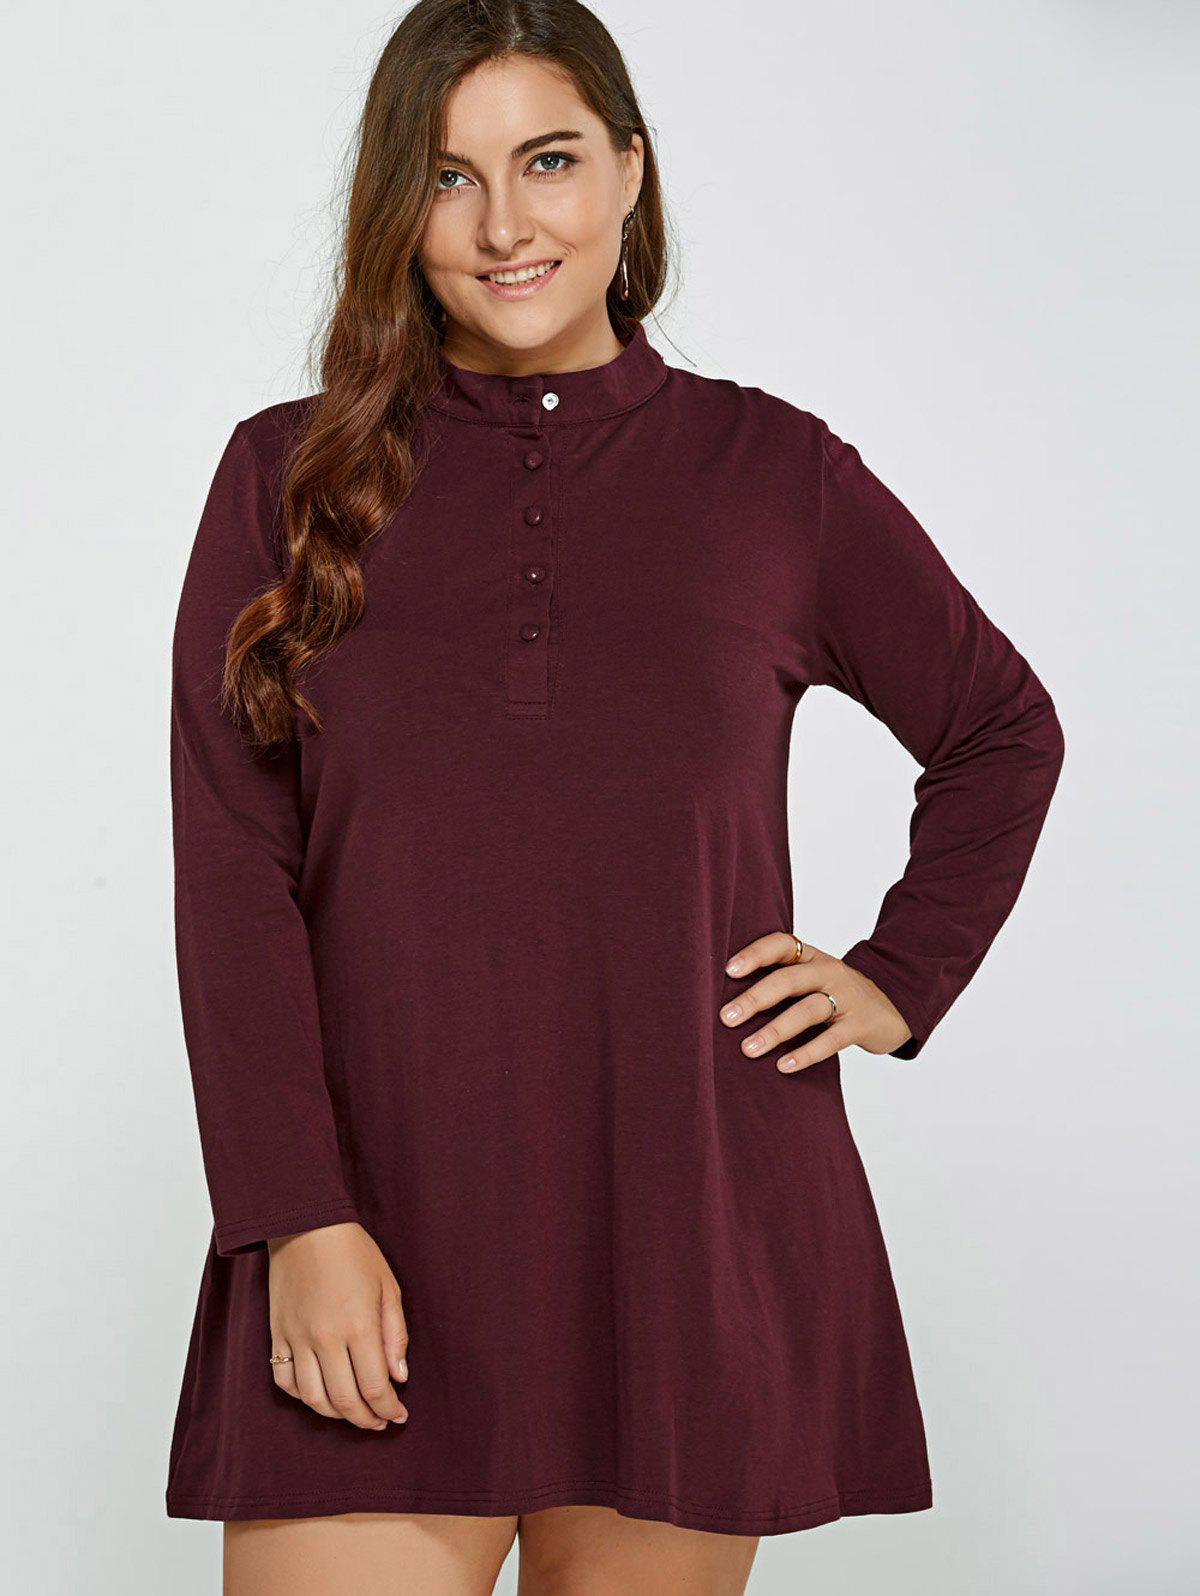 Long Sleeve Plus Size Dress - Rouge vineux 3XL